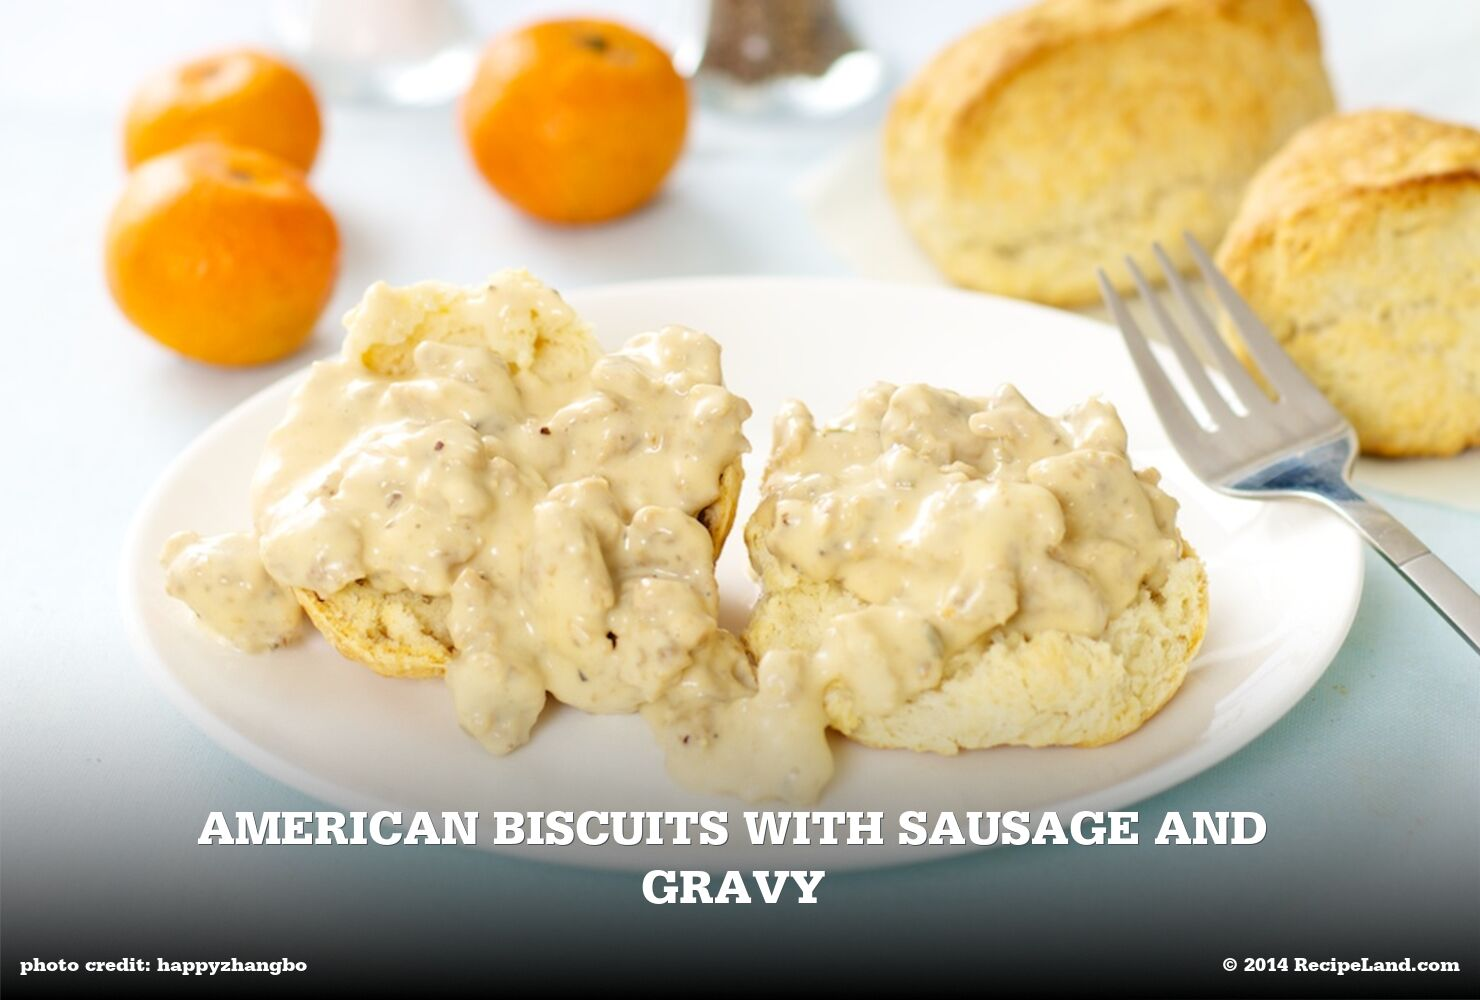 Biscuits with Sausage and Gravy